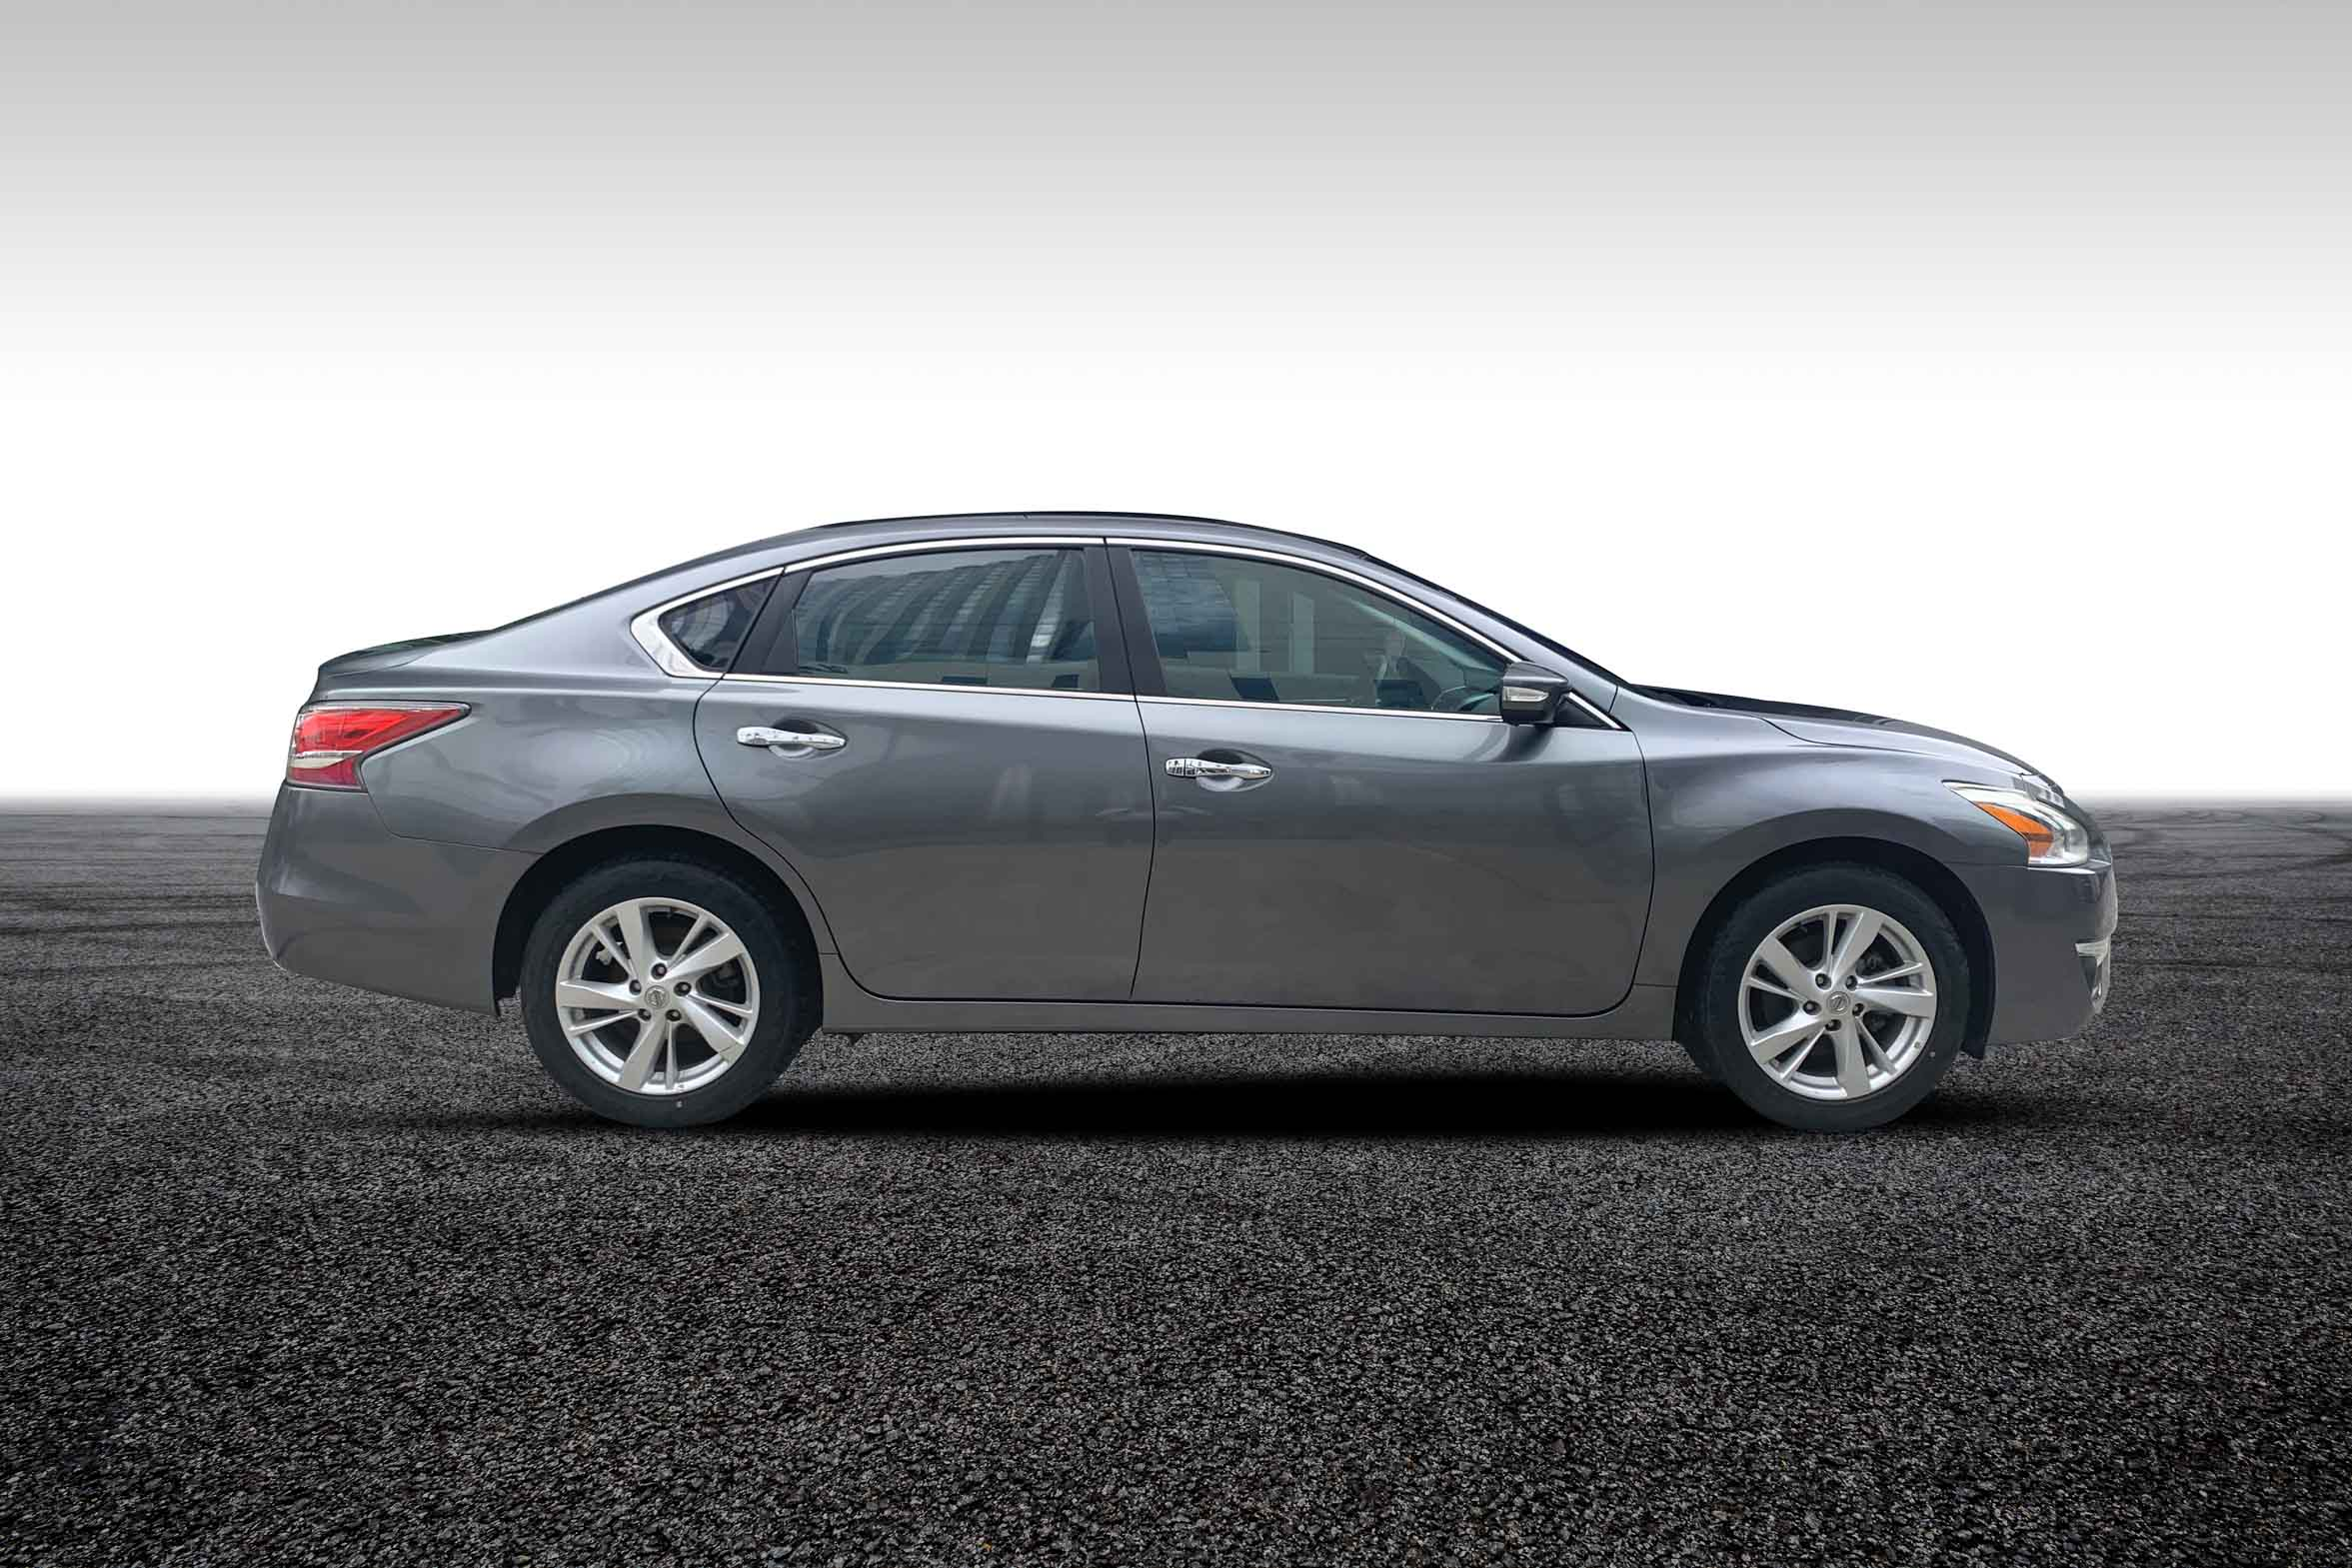 stallion approved - nissan Altima 2015 side view